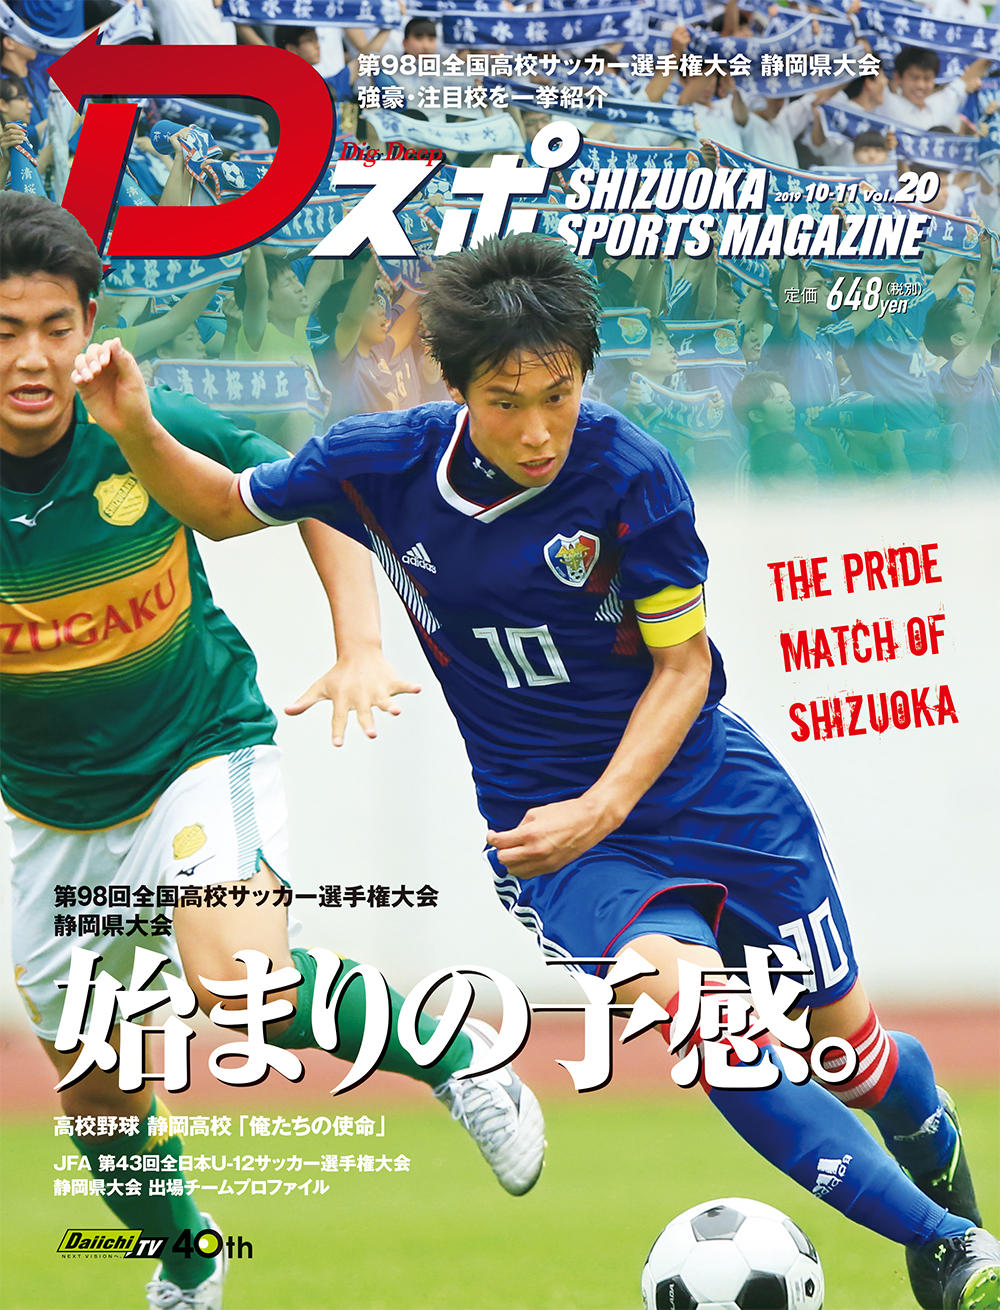 http://d-sports.shizuokastandard.jp/article/2019/20_H1.jpg